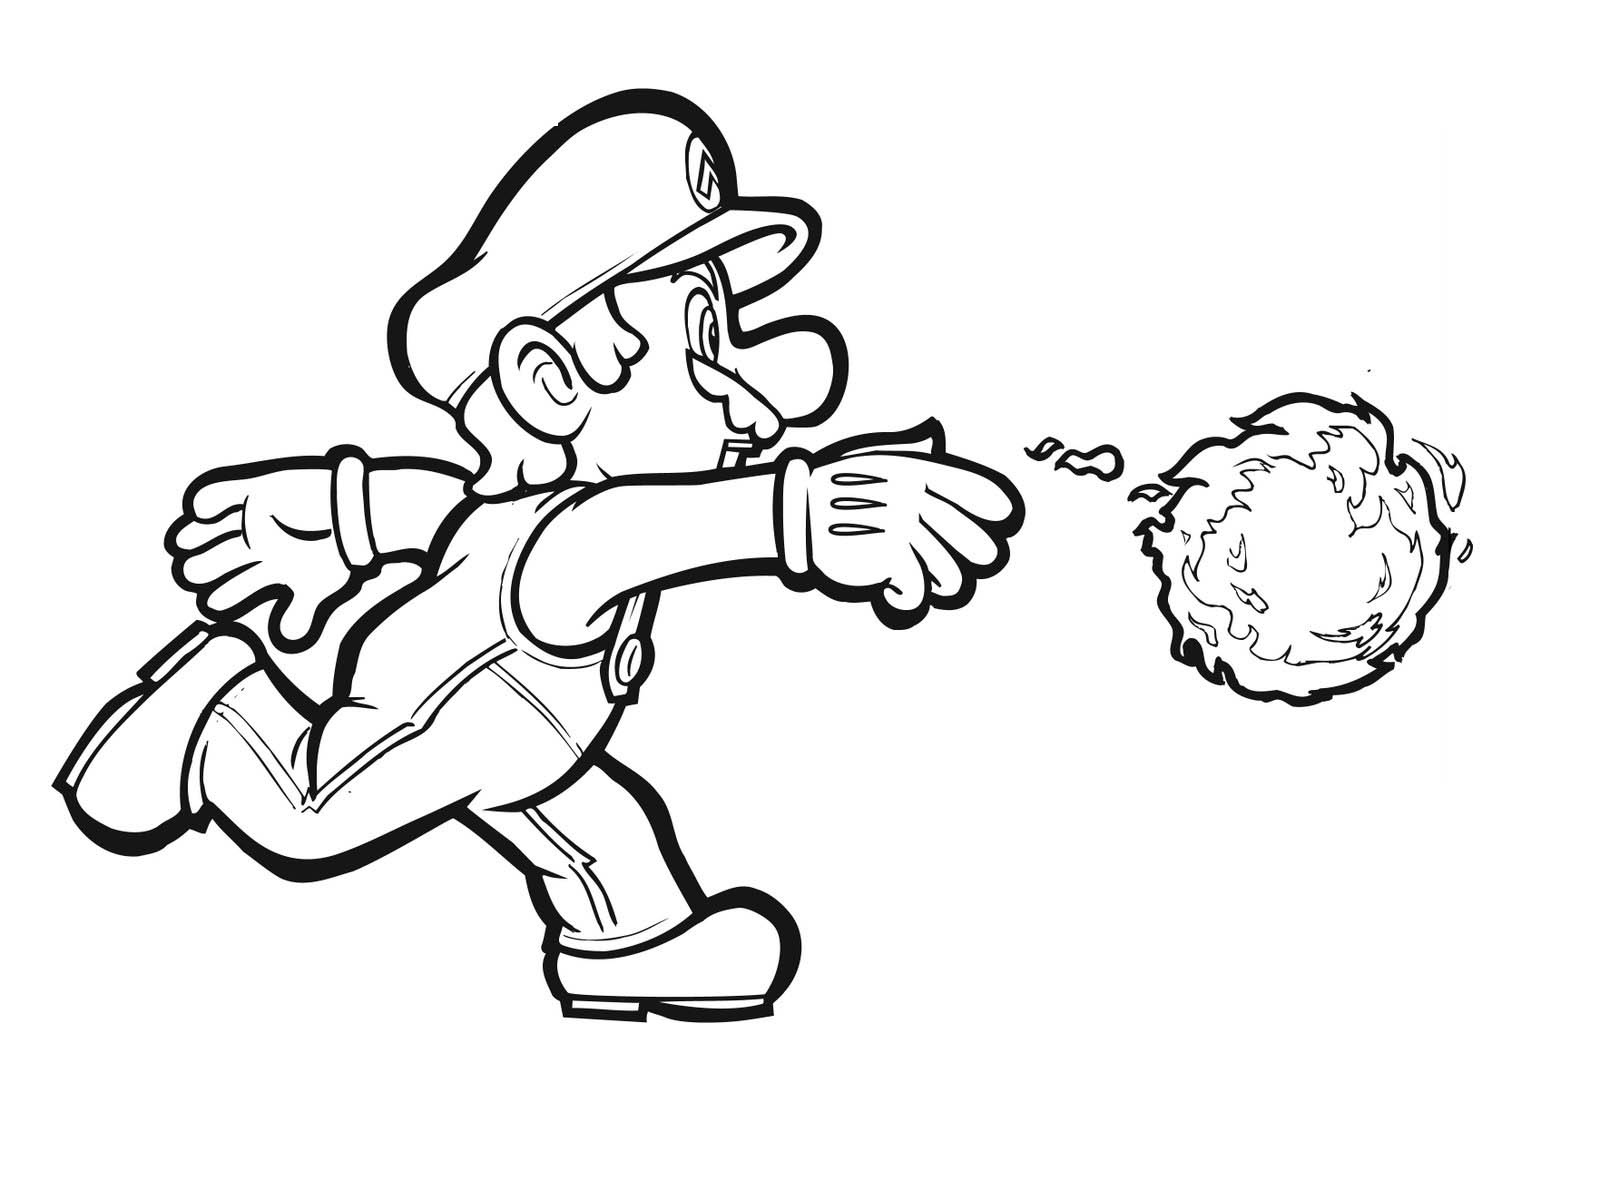 mario-coloring-pages-4